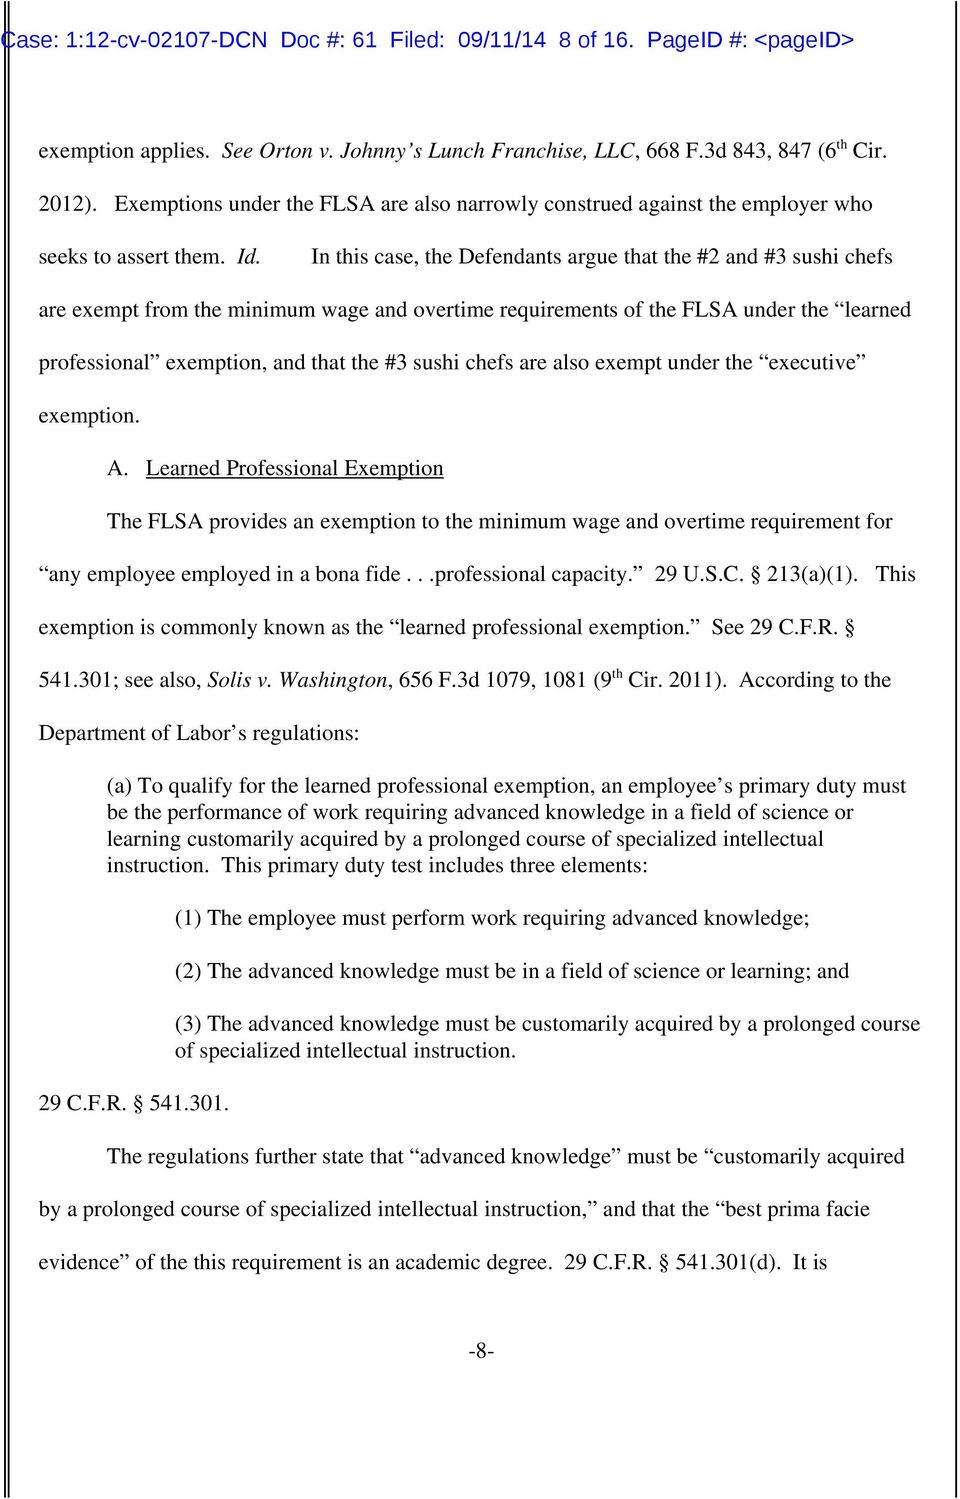 In this case, the Defendants argue that the #2 and #3 sushi chefs are exempt from the minimum wage and overtime requirements of the FLSA under the learned professional exemption, and that the #3